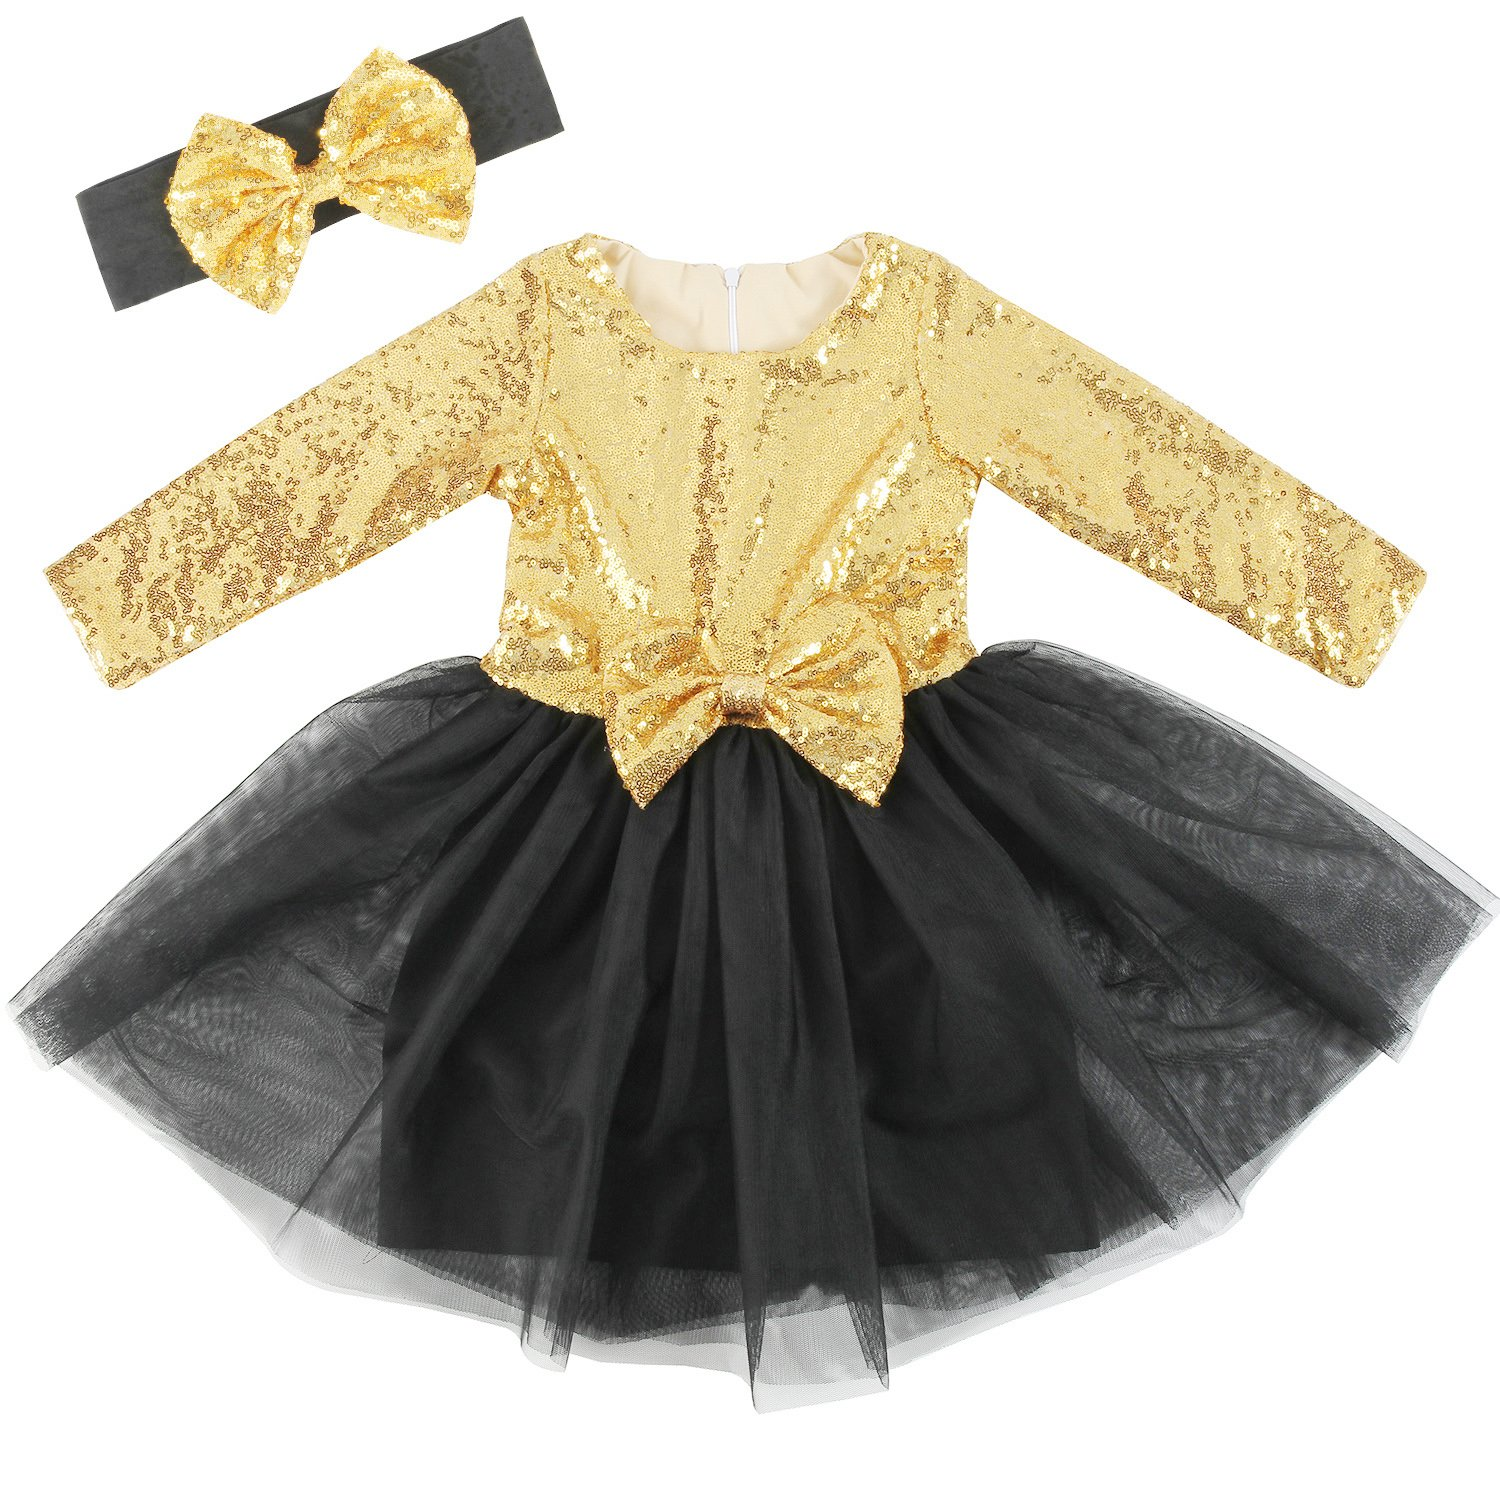 11c5d384b We have made the long sleeve dresses true to size, bigger the front bows  and made the tutu much more fluffy. ✿NO SCRATCHY TO BABY GIRLS ...